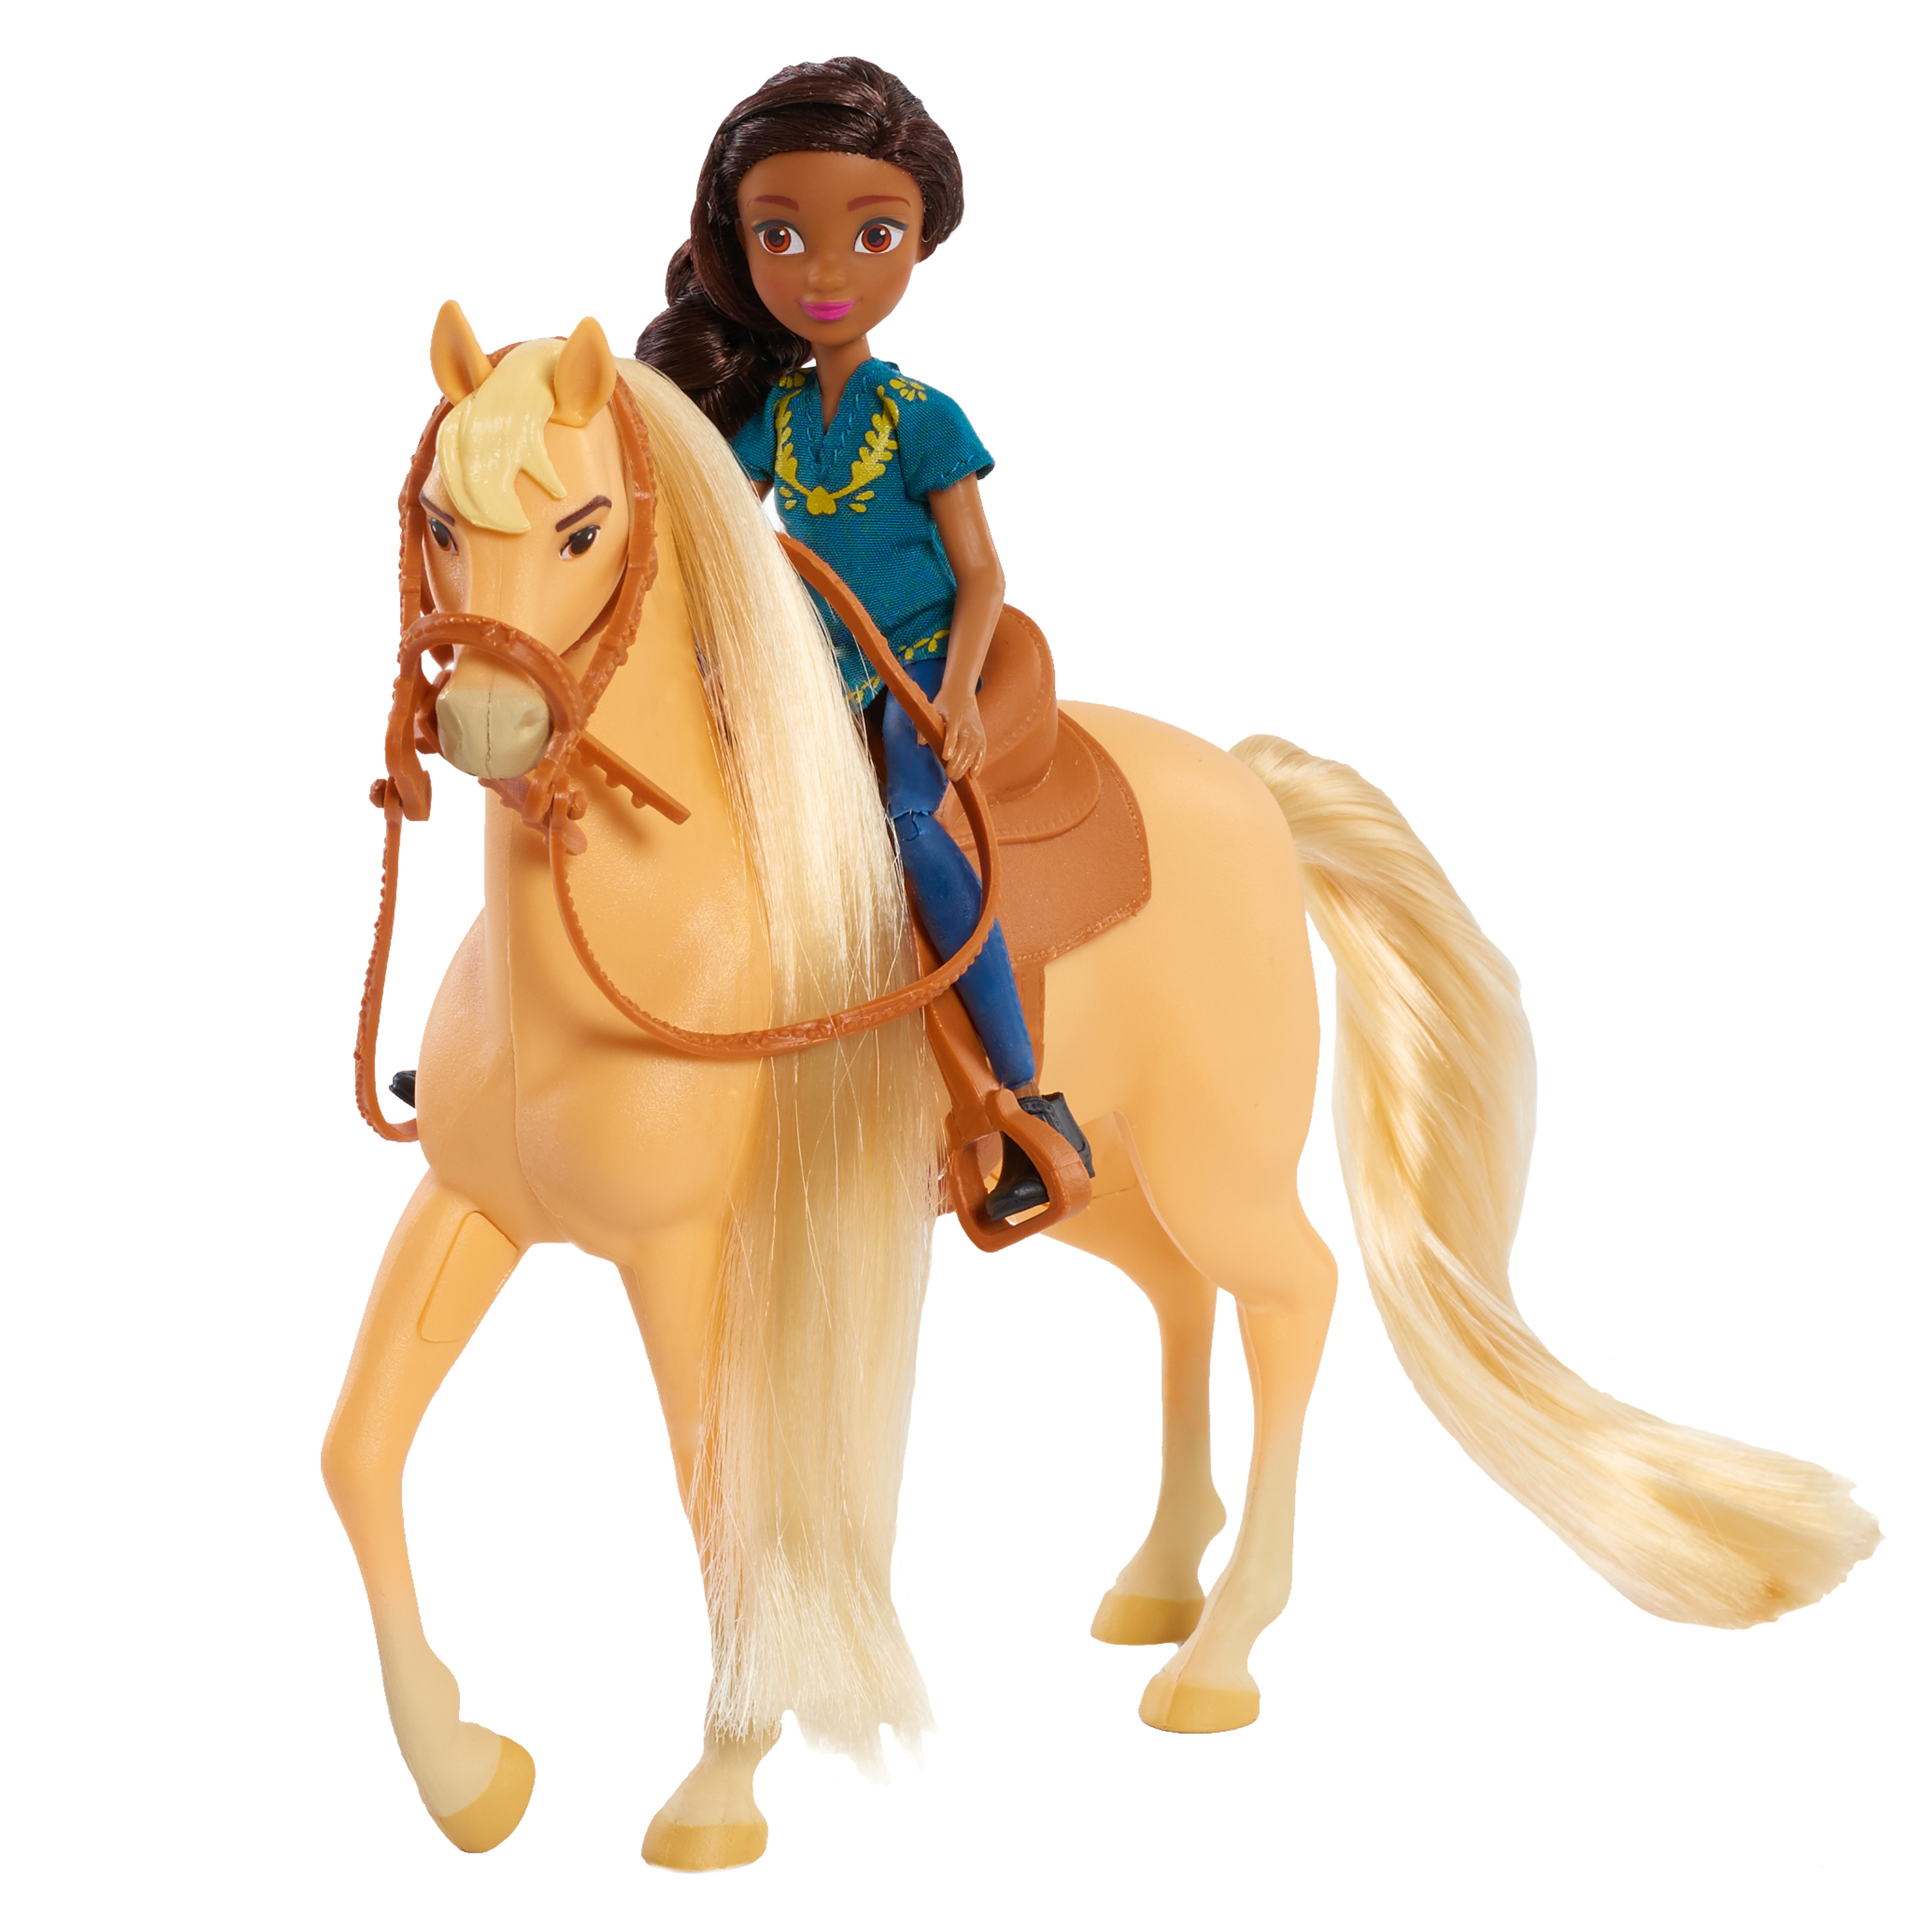 Spirit Riding Free Small Doll and Horse Set - Pru & Chica Linda